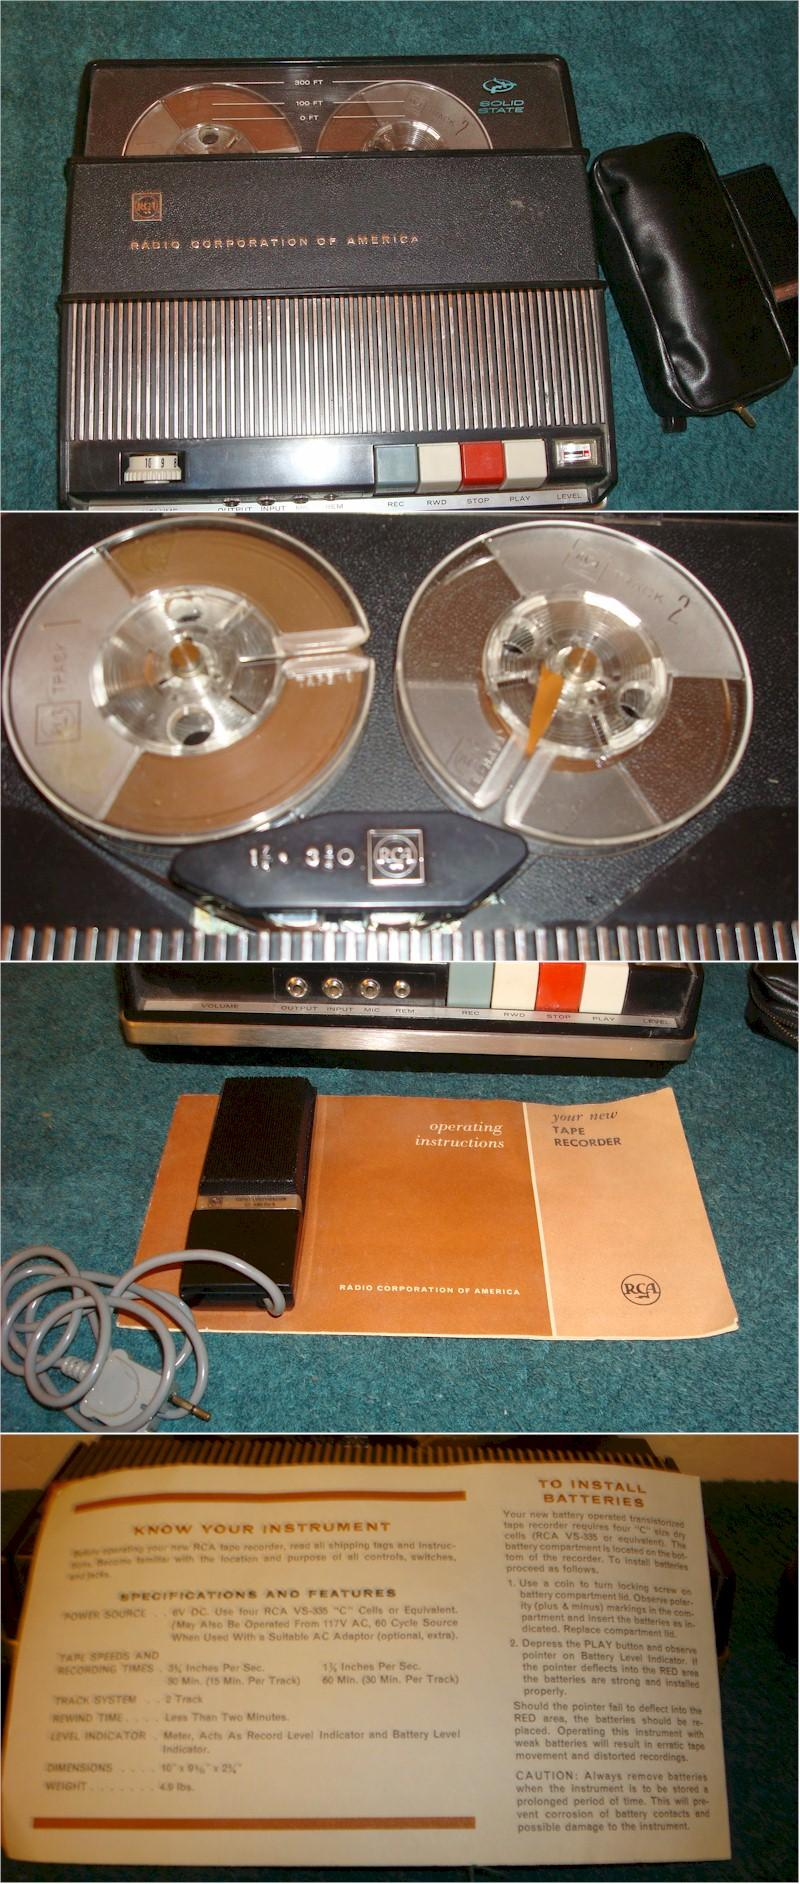 RCA Portable Reel to Reel Recorder (1960s)